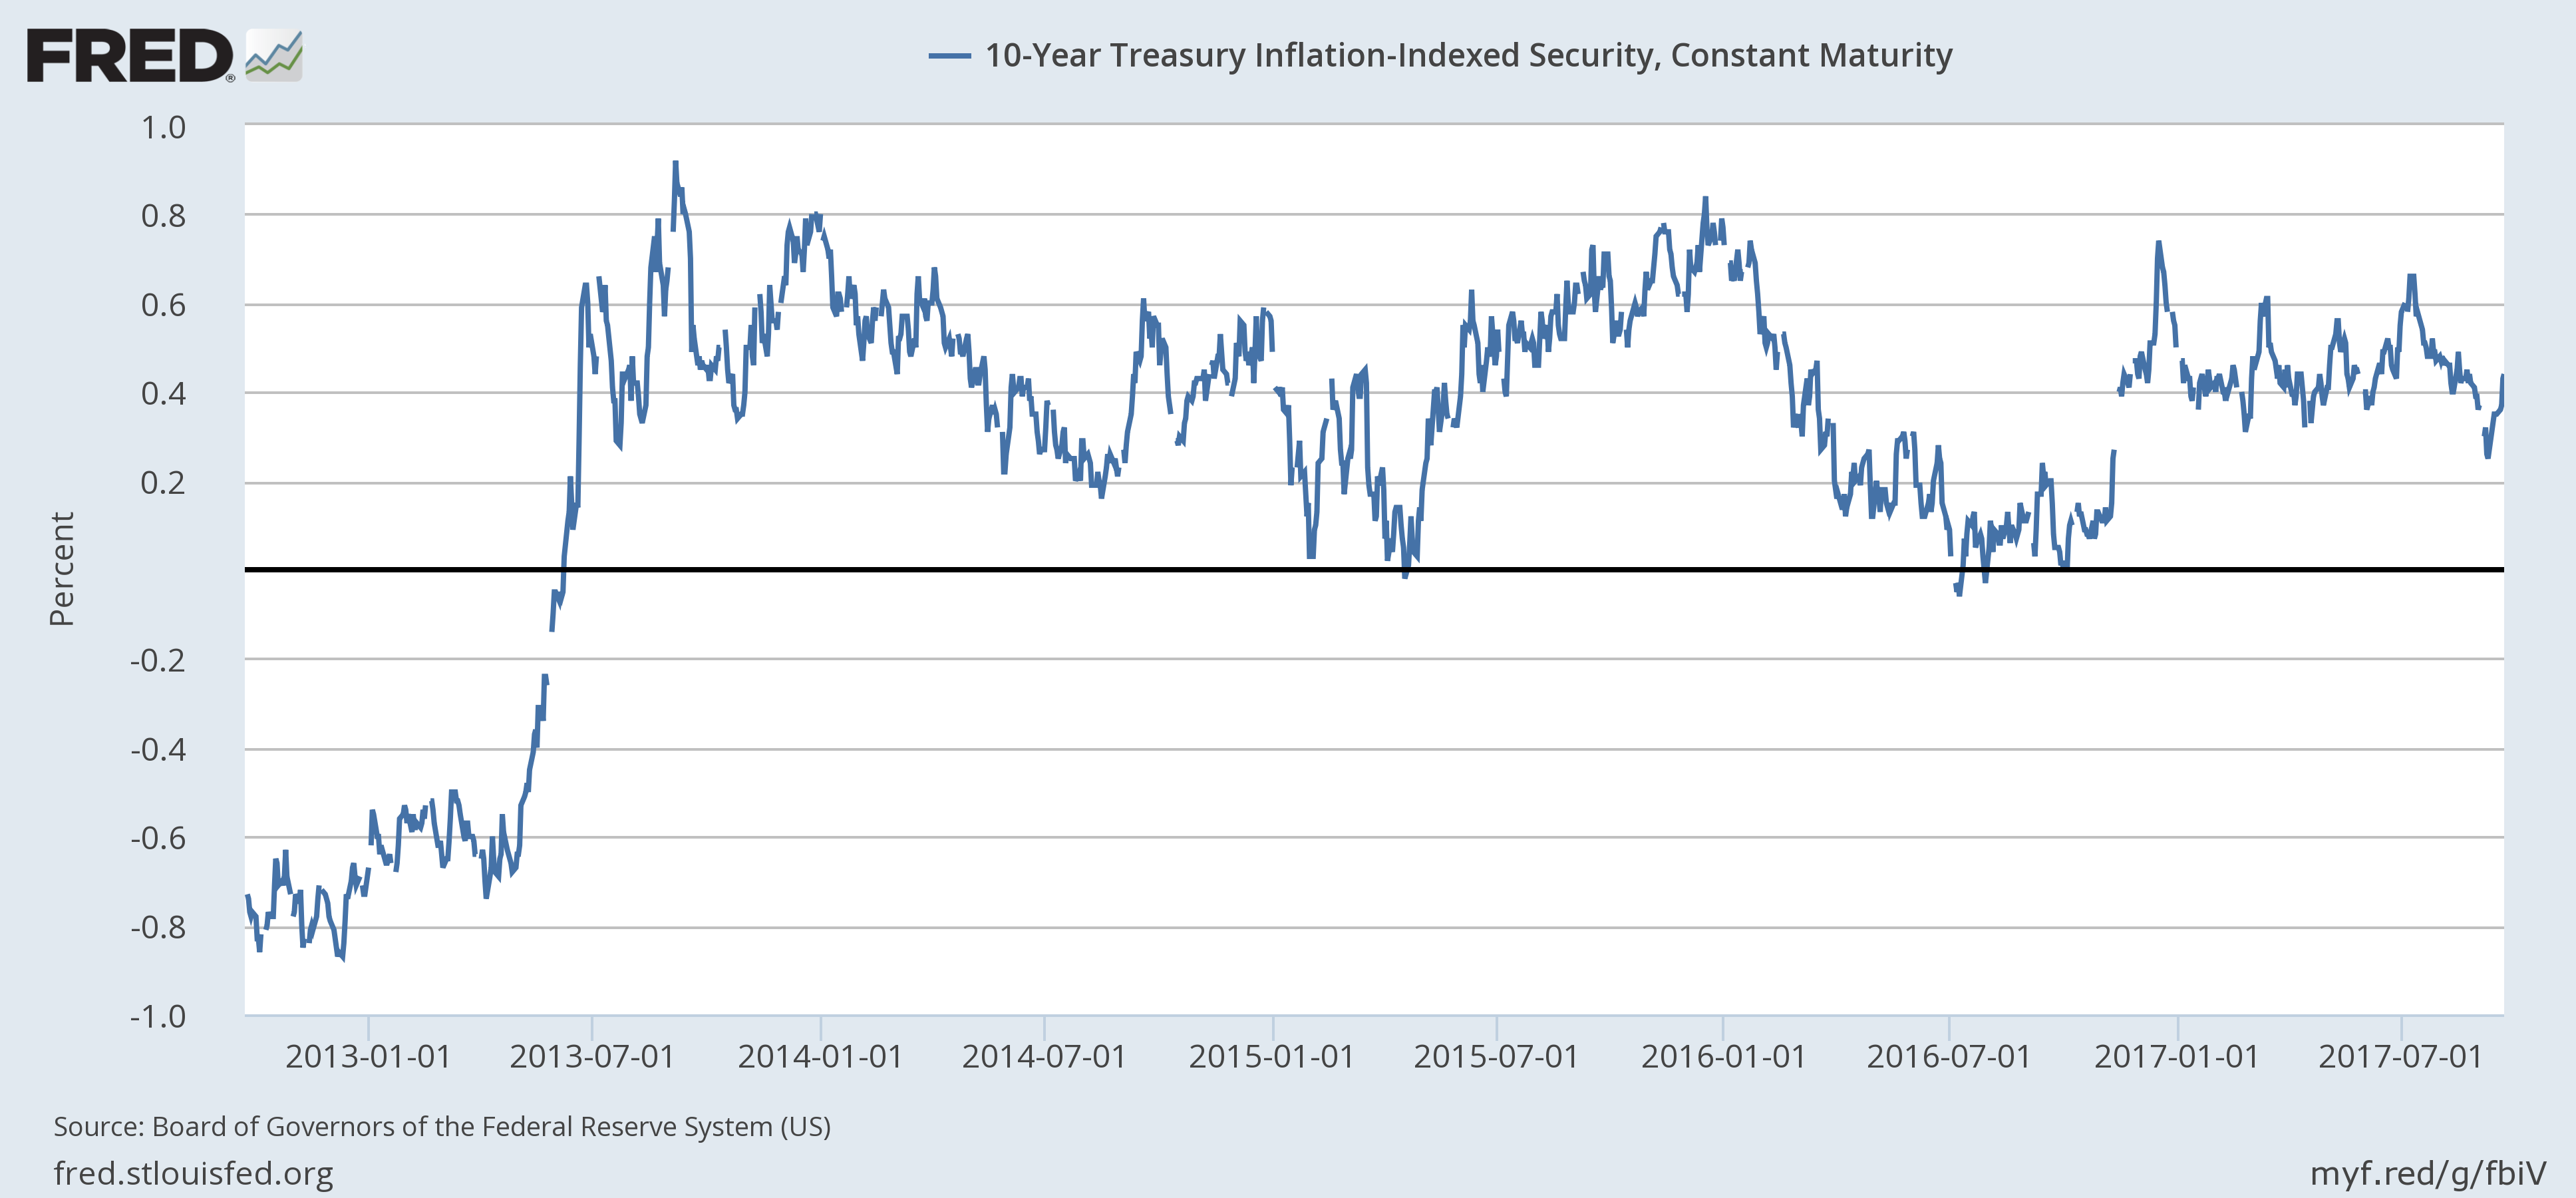 US 10 Year Treasury Inflation - Indexed Security, Jan 2013 - Jul 2017